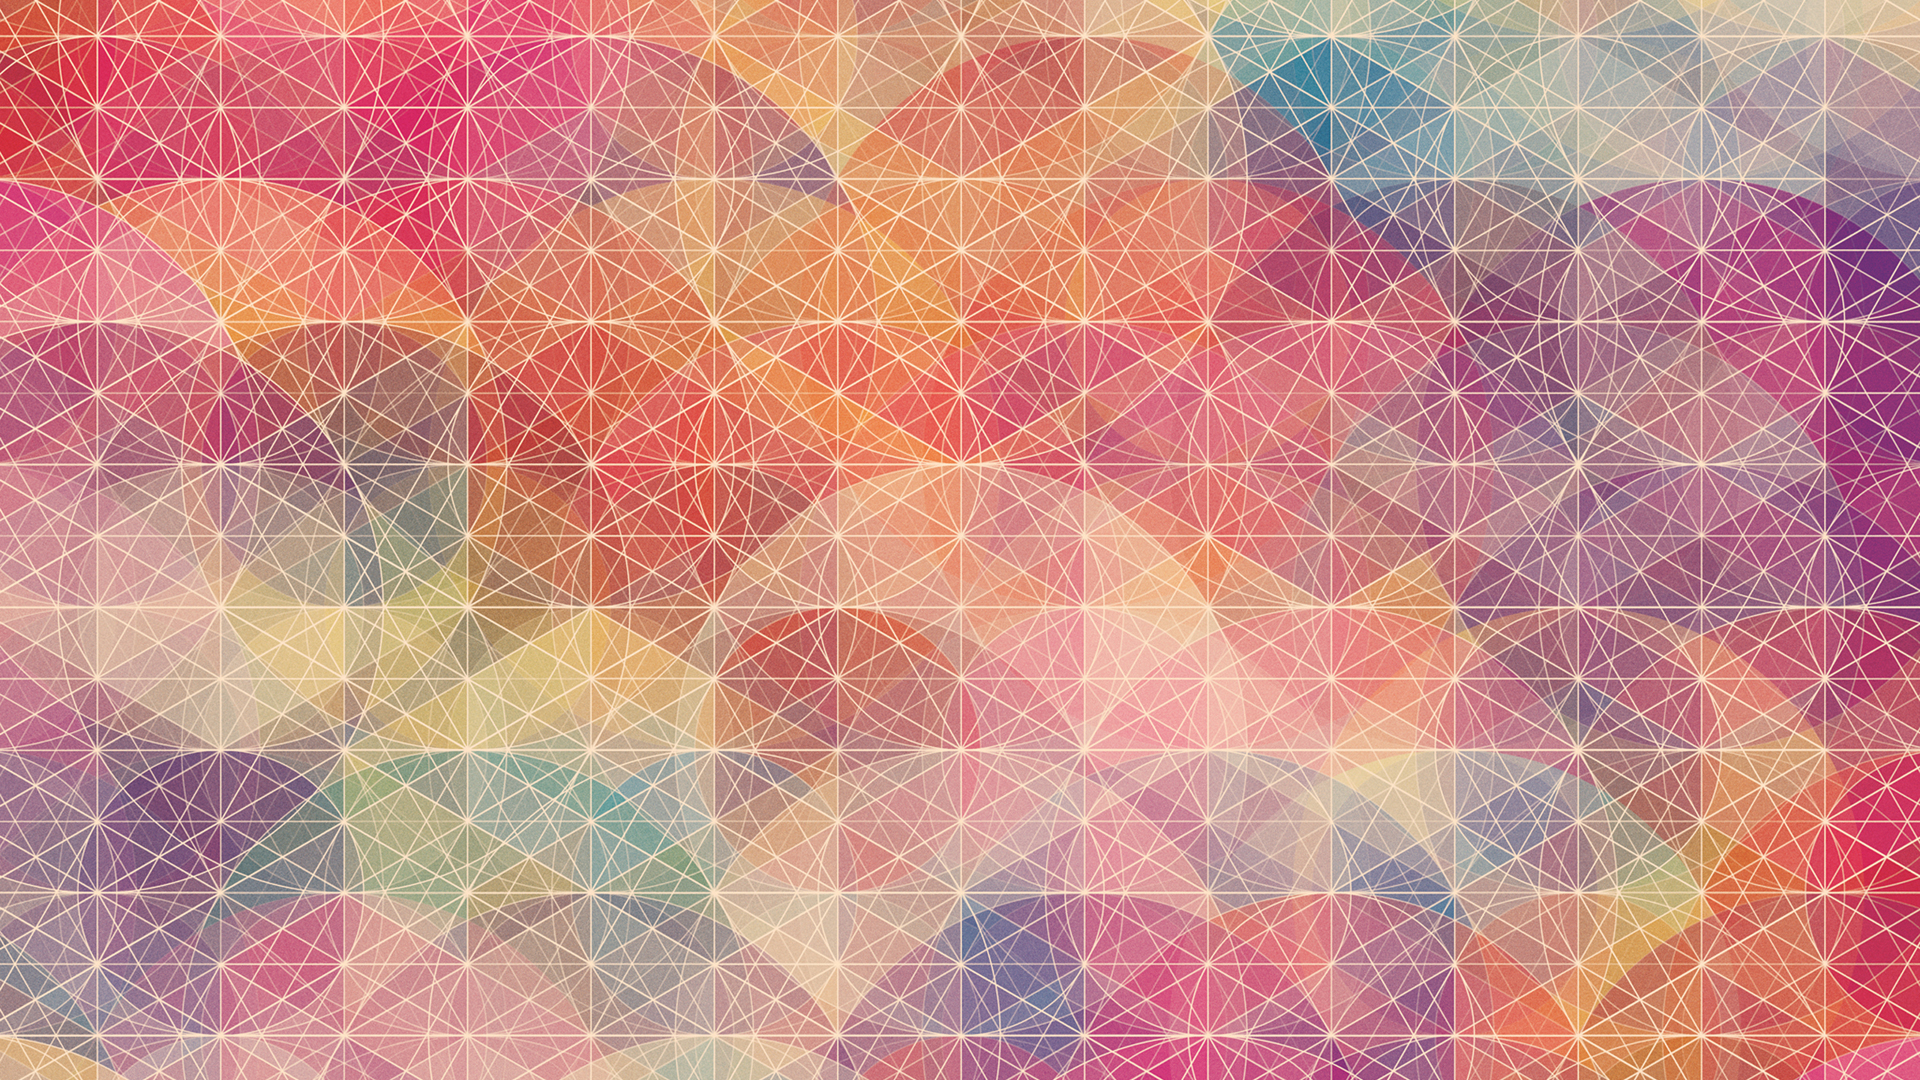 Isometric and geometry inspired desktop wallpapers - Geometric desktop background ...